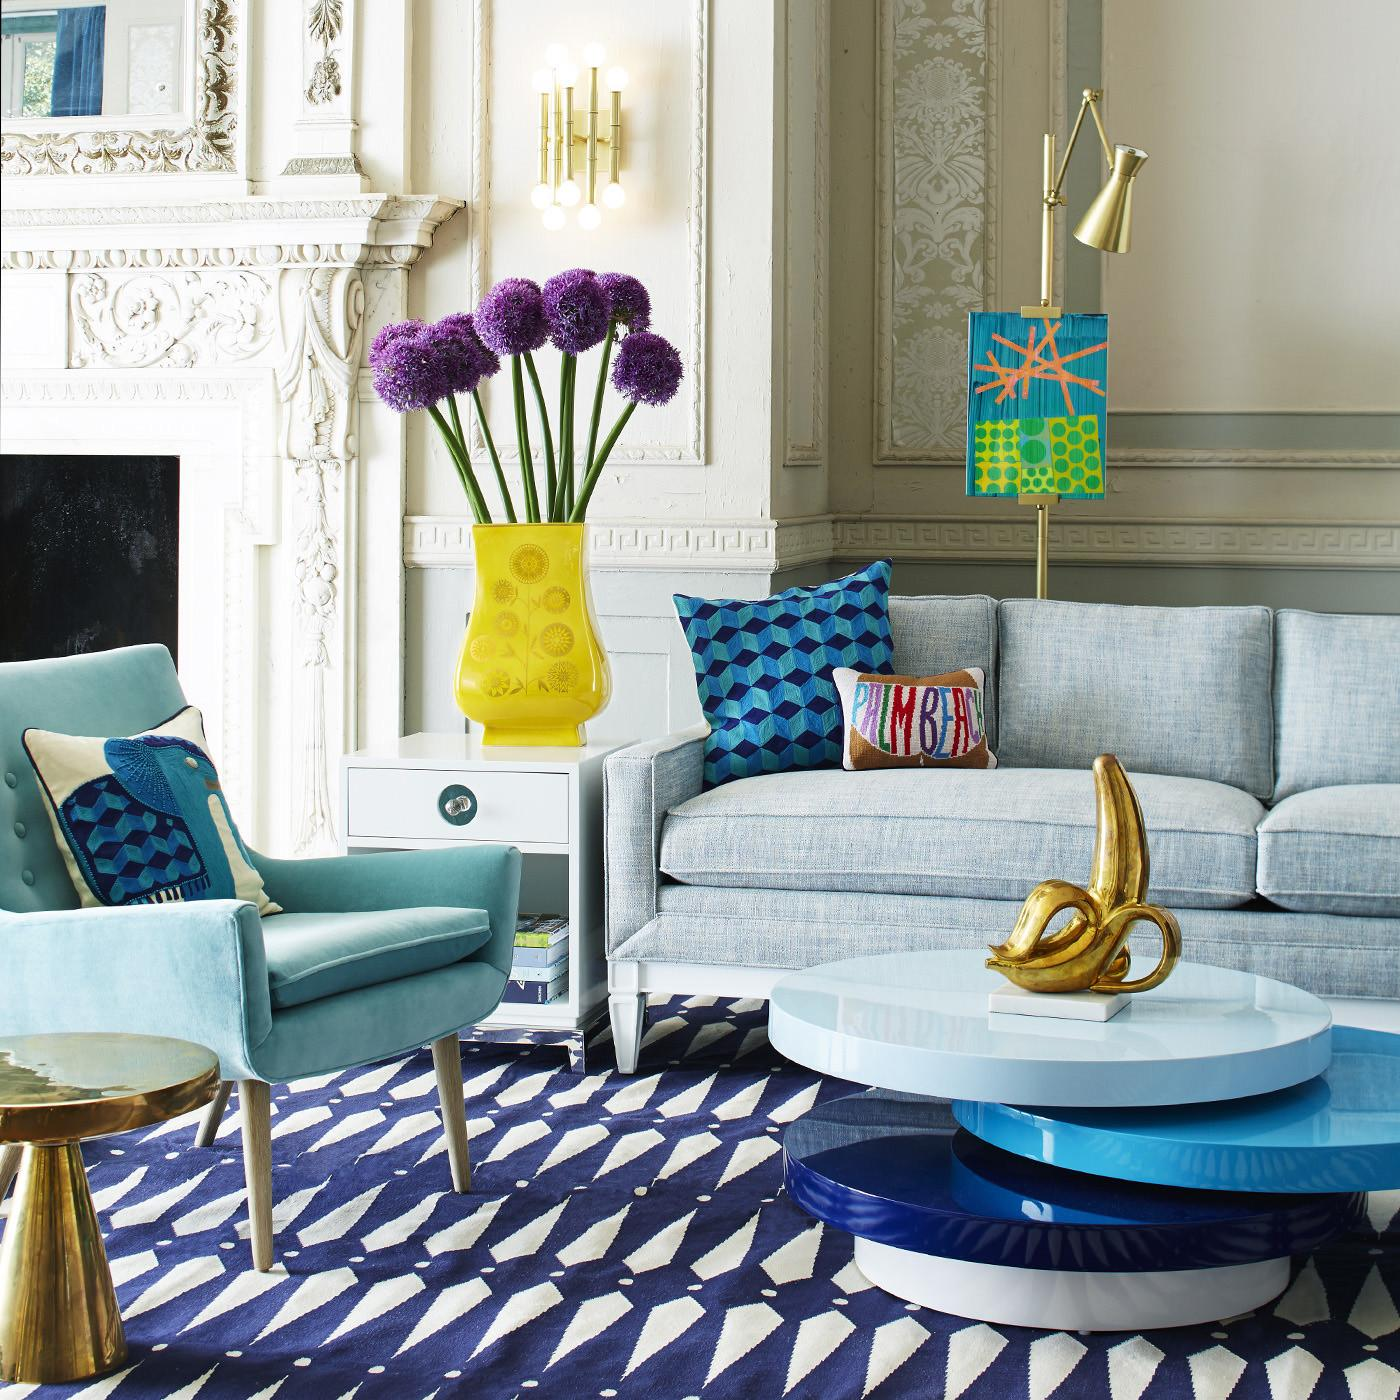 Give Your Home Decor Modern American Glamour